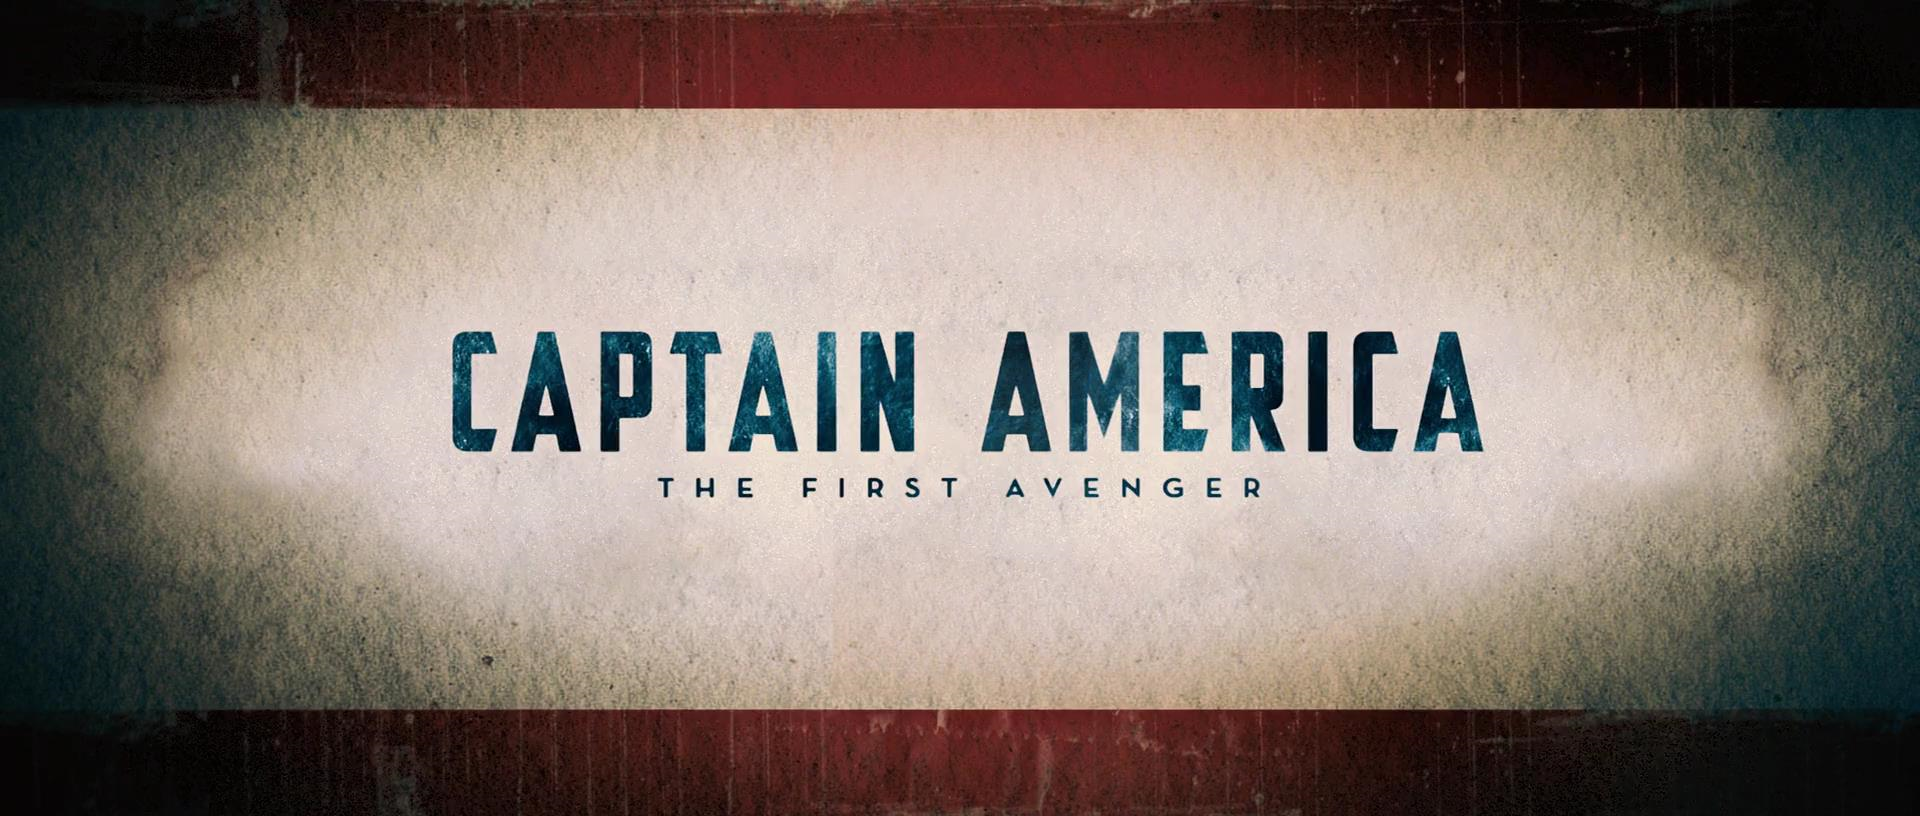 Thoughts on 'Captain America: The First Avenger' | Serpent's Den